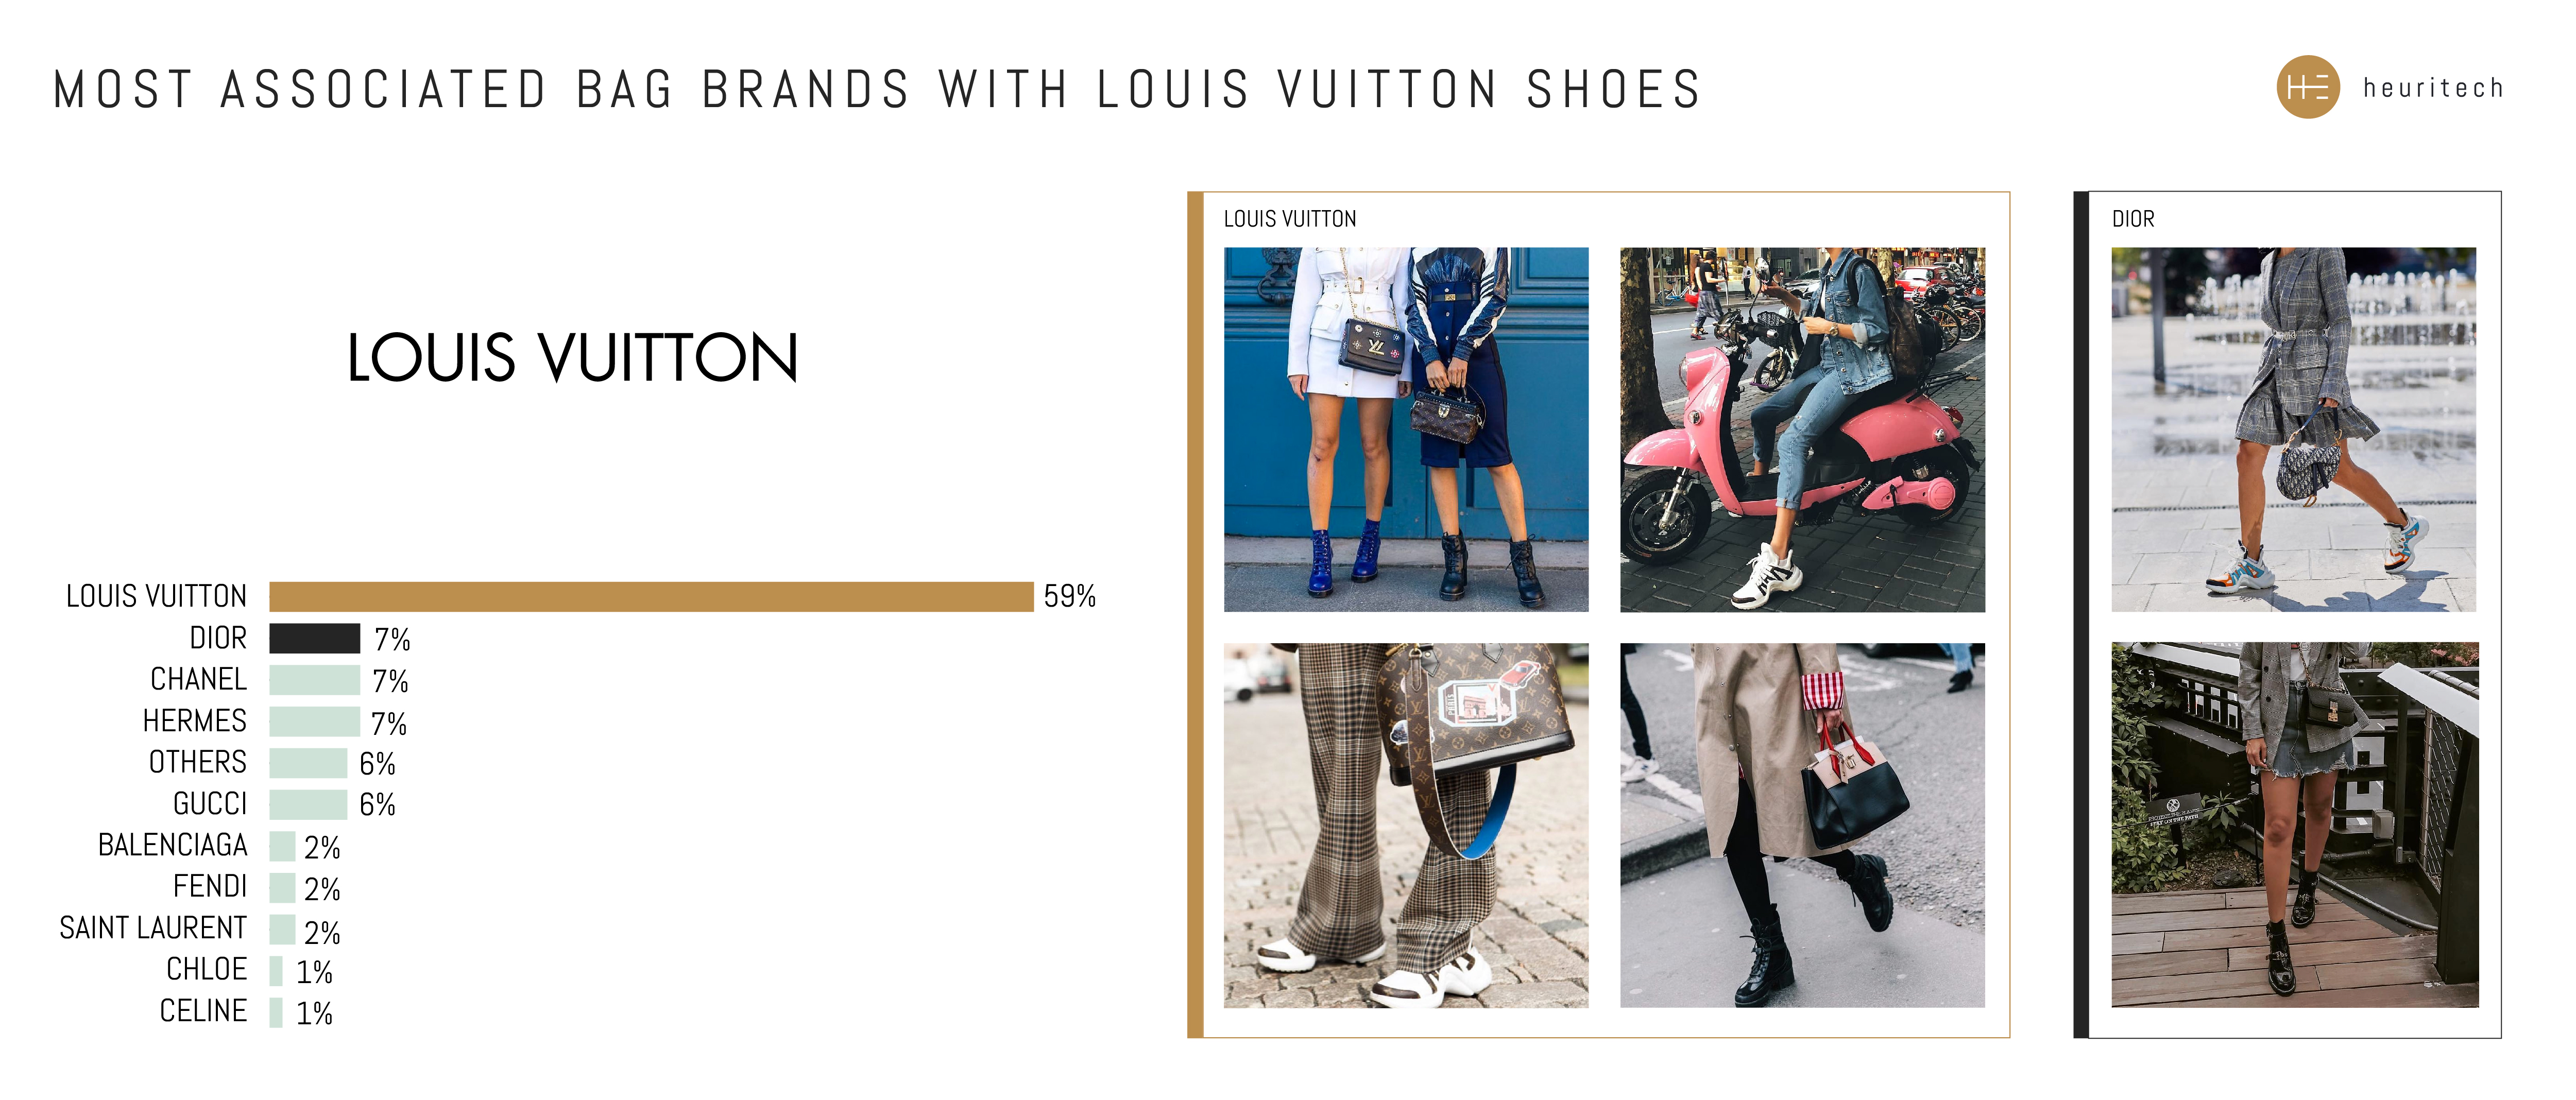 Bag brands paired with Louis Vuitton shoes